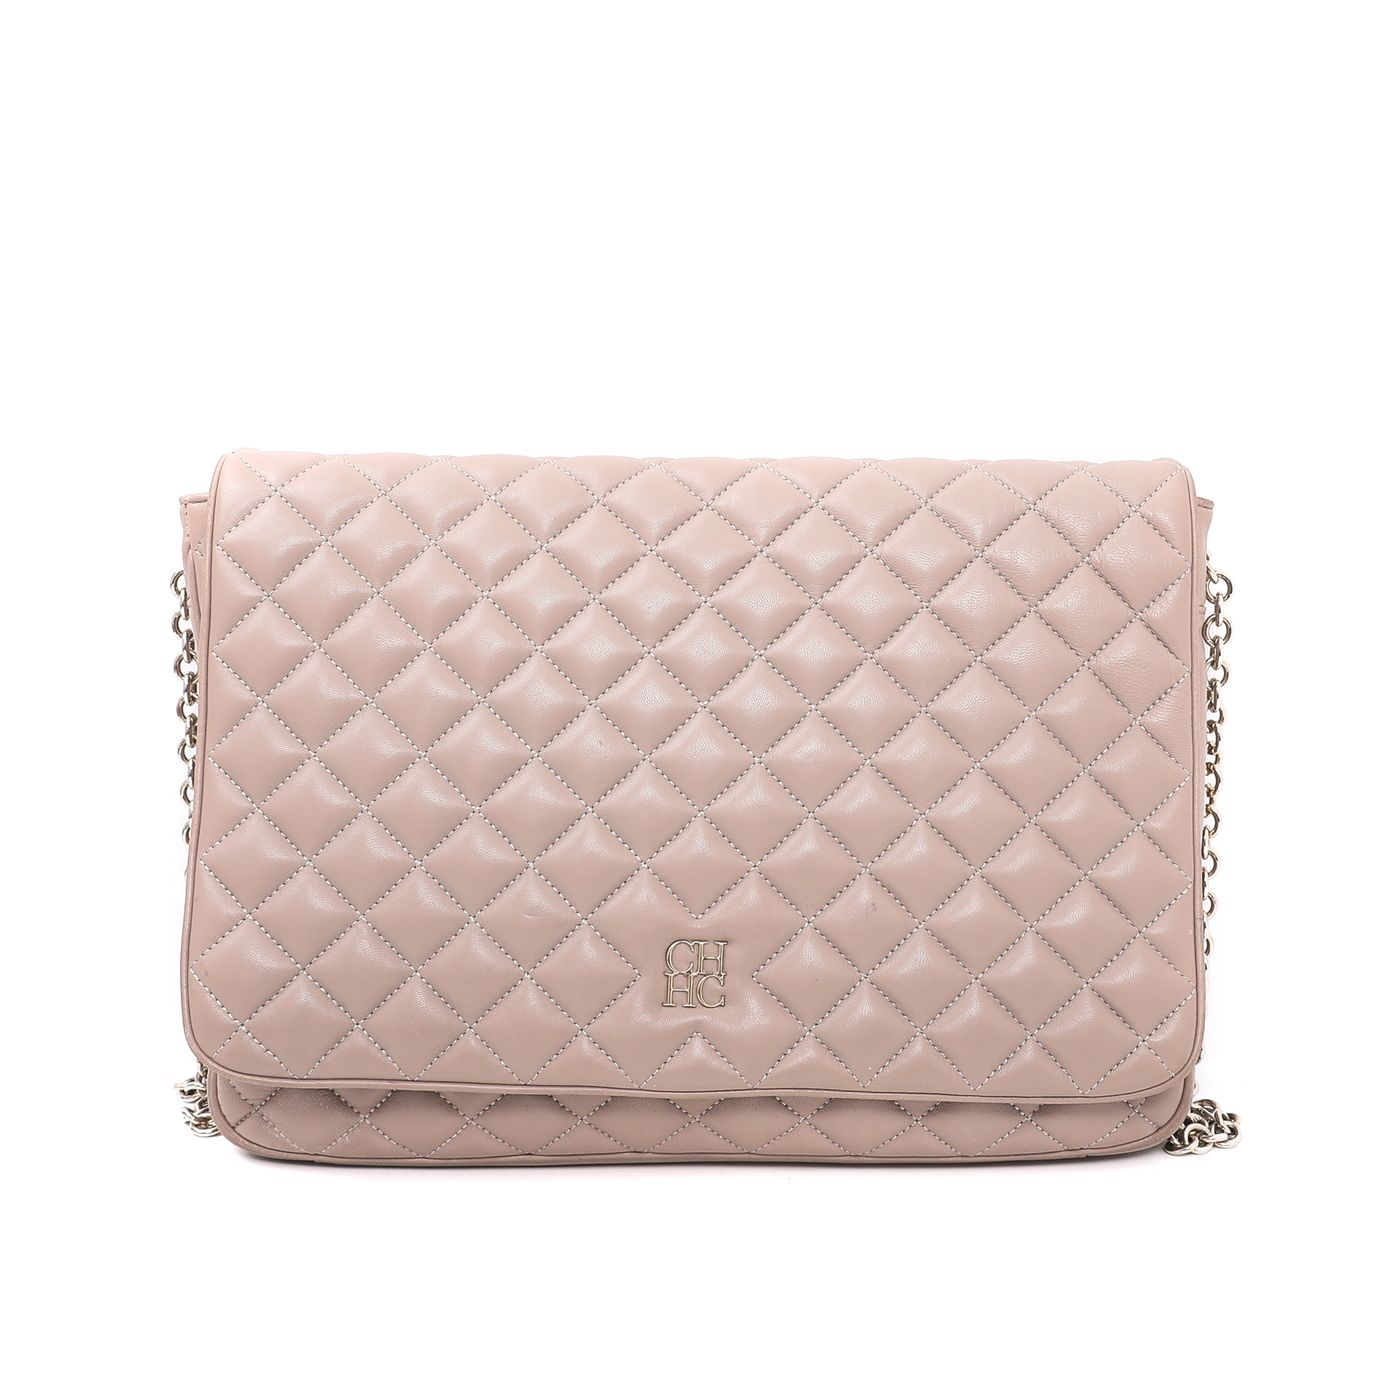 Carolina Herrera Beige Quilted Chain Flap Bag